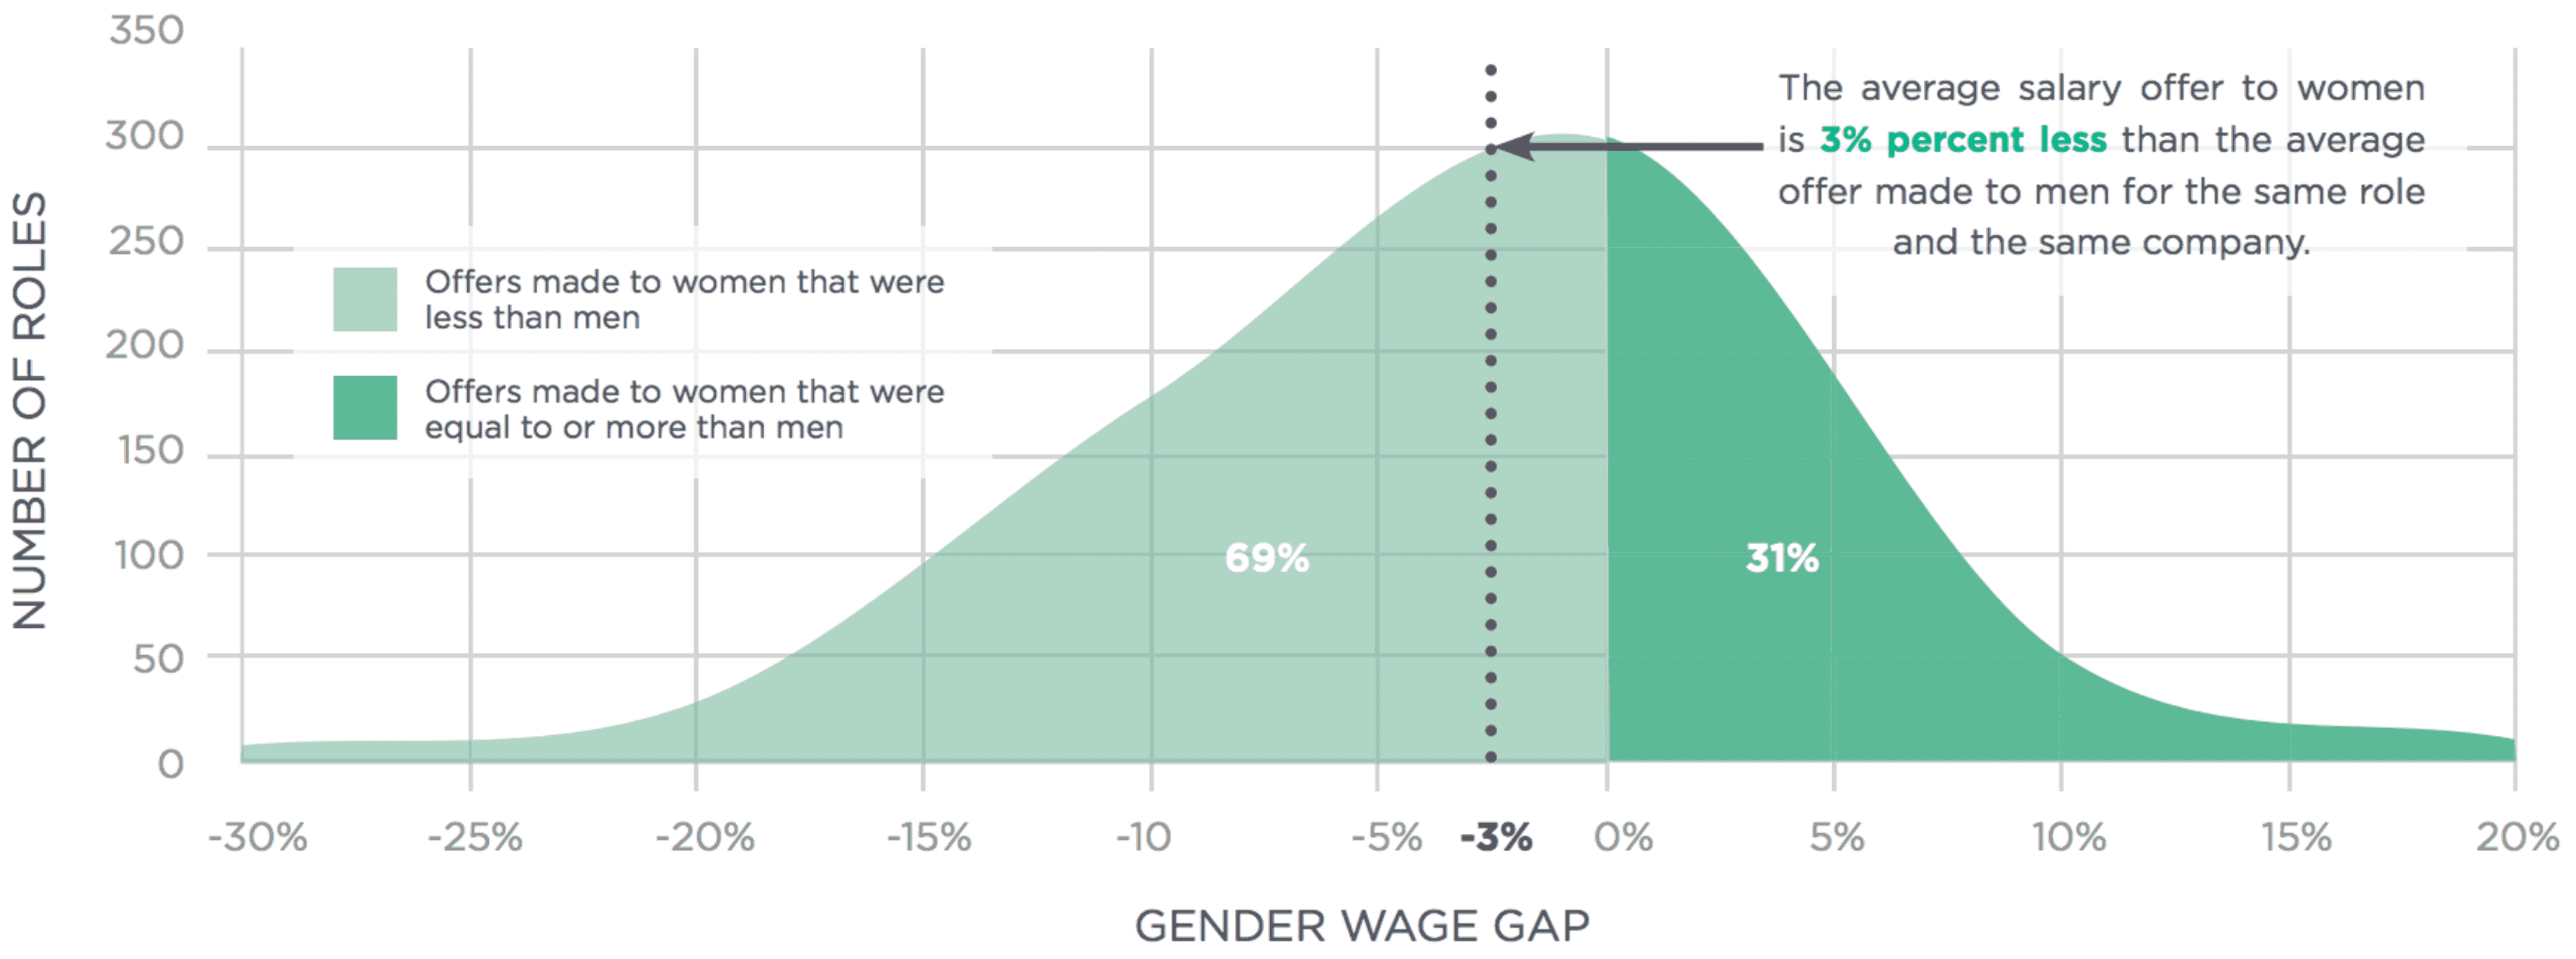 Equal rights for men and women women amp men different but equal -  Men And Women Earn The Same Gender Gap In Pay